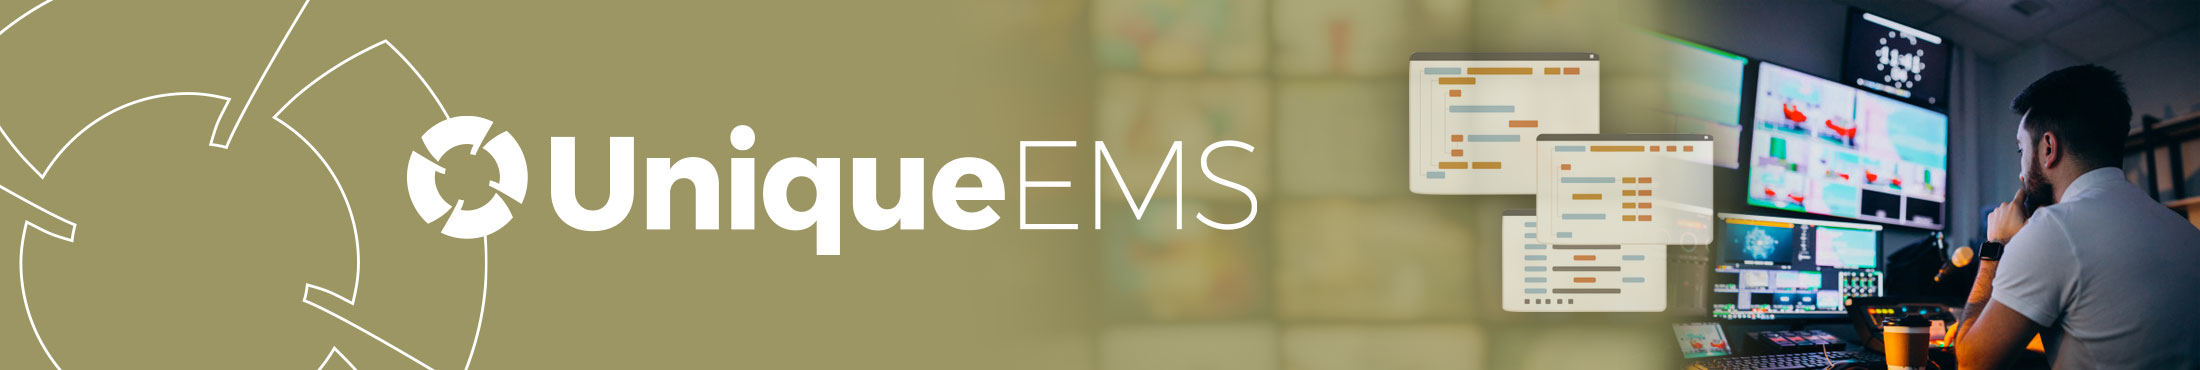 Why medical emergency services choose Unique EMS?